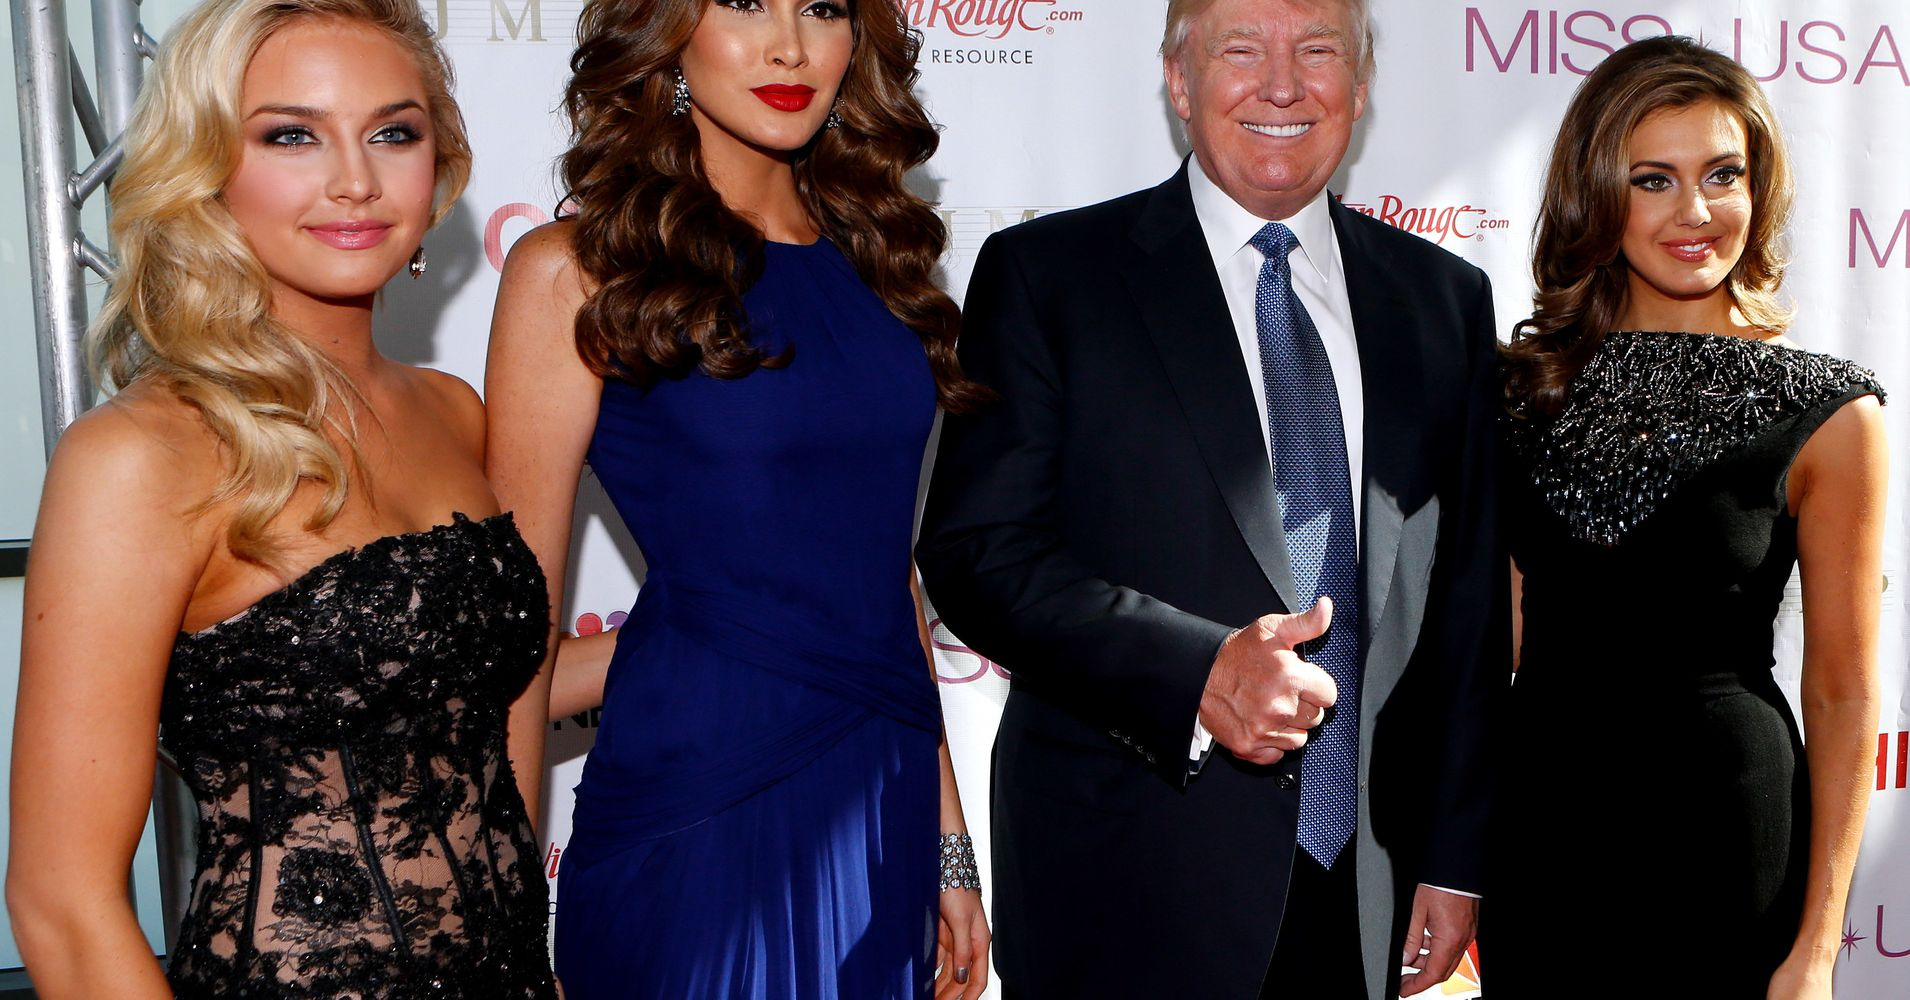 As pageant owner, Donald Trump walked into dressing rooms